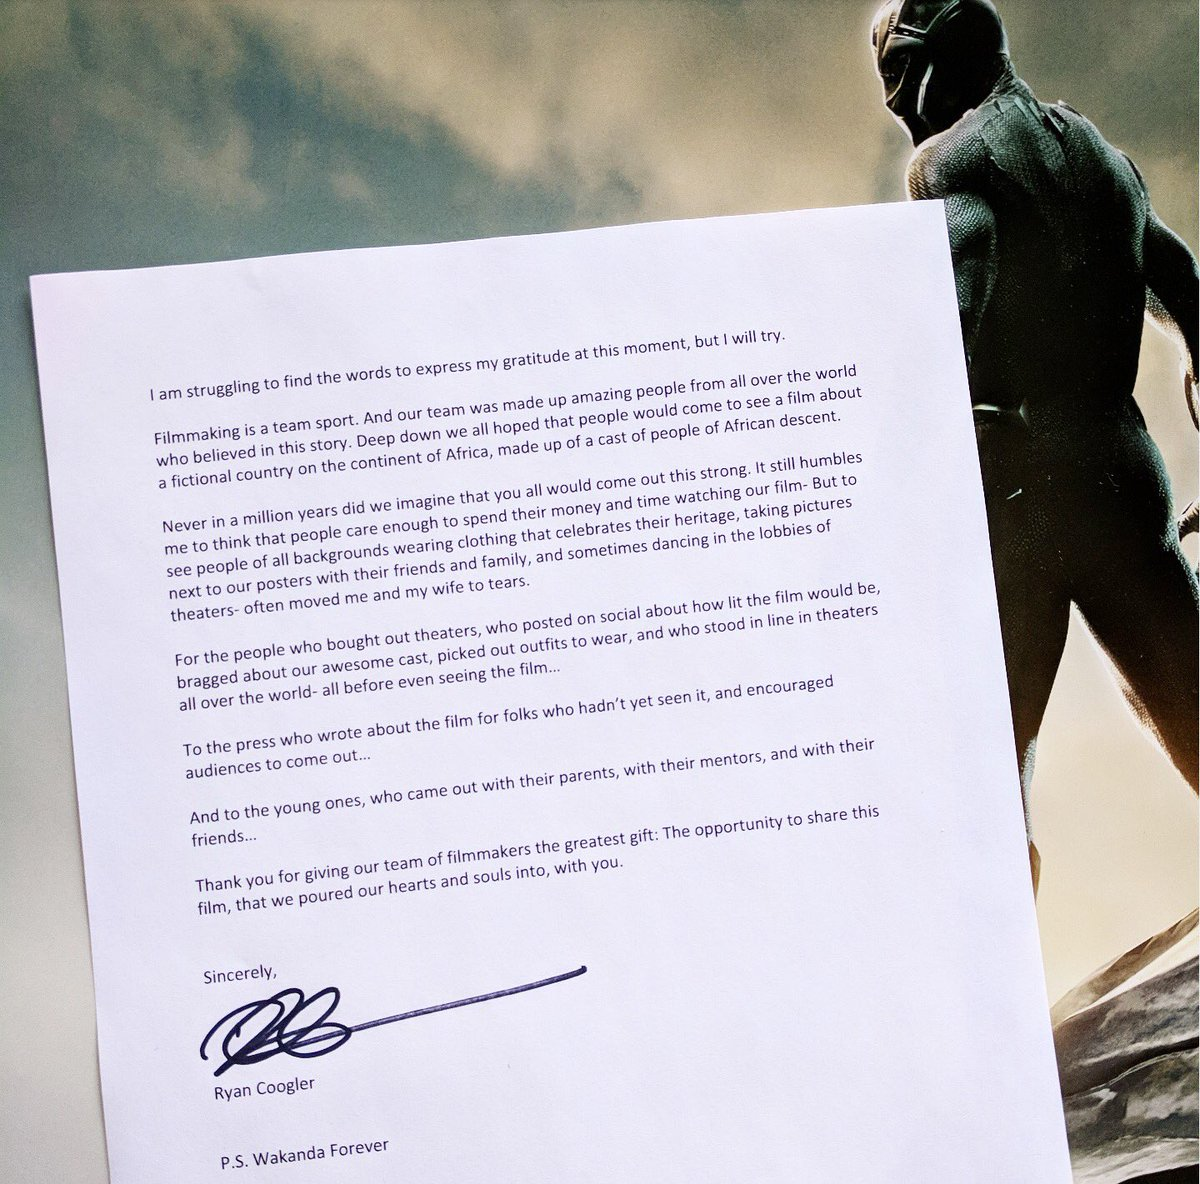 A beautiful black panther thank you letter from its director thank you letter from director ryan coogler photo courtesy of twitter via marvelstudios expocarfo Image collections